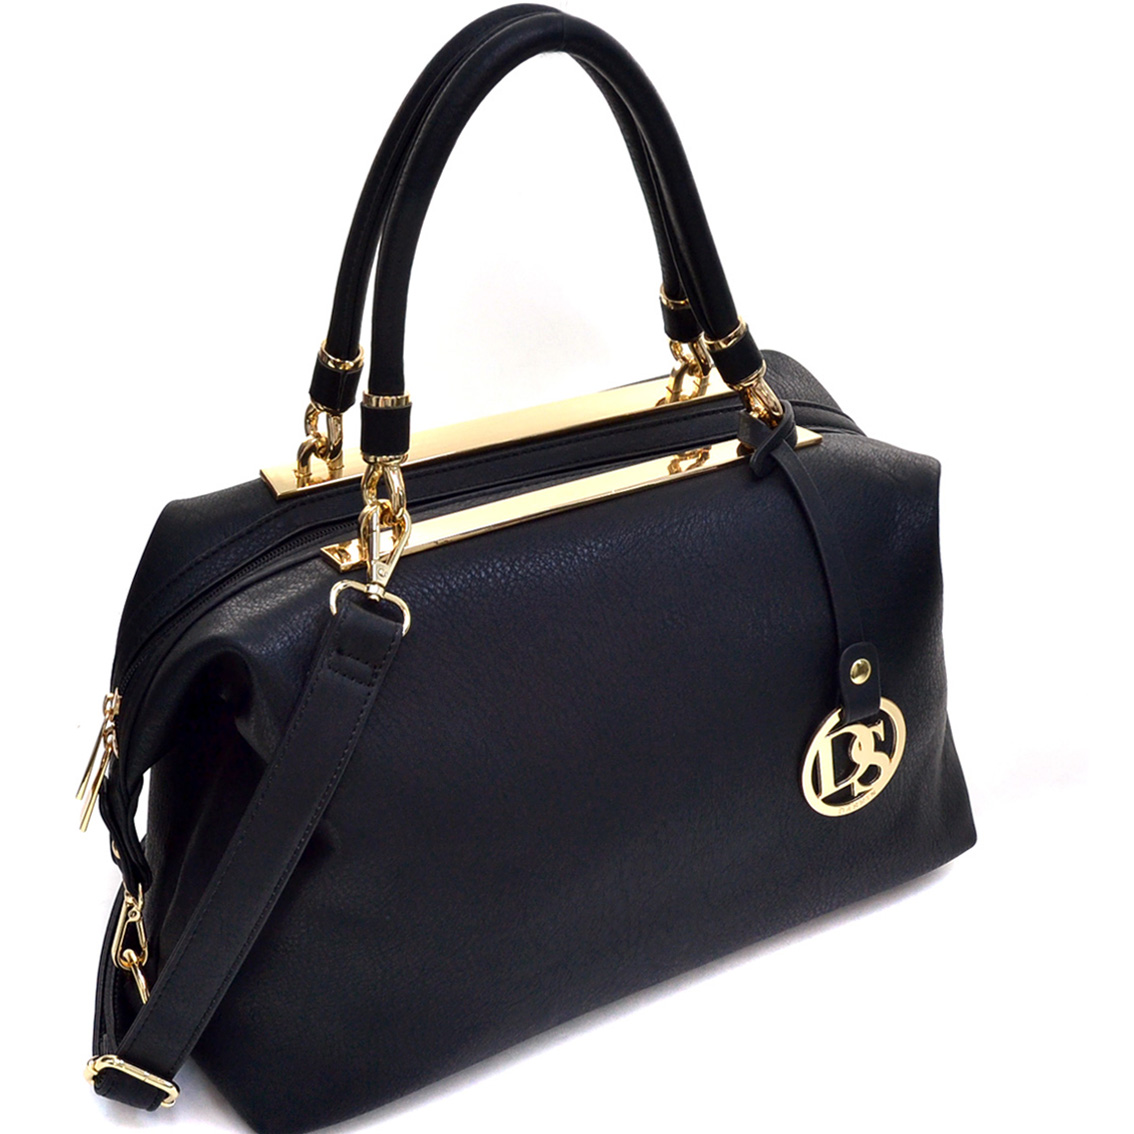 Gold-Tone Frame Shoulder Bag w/ Dasein Emblem